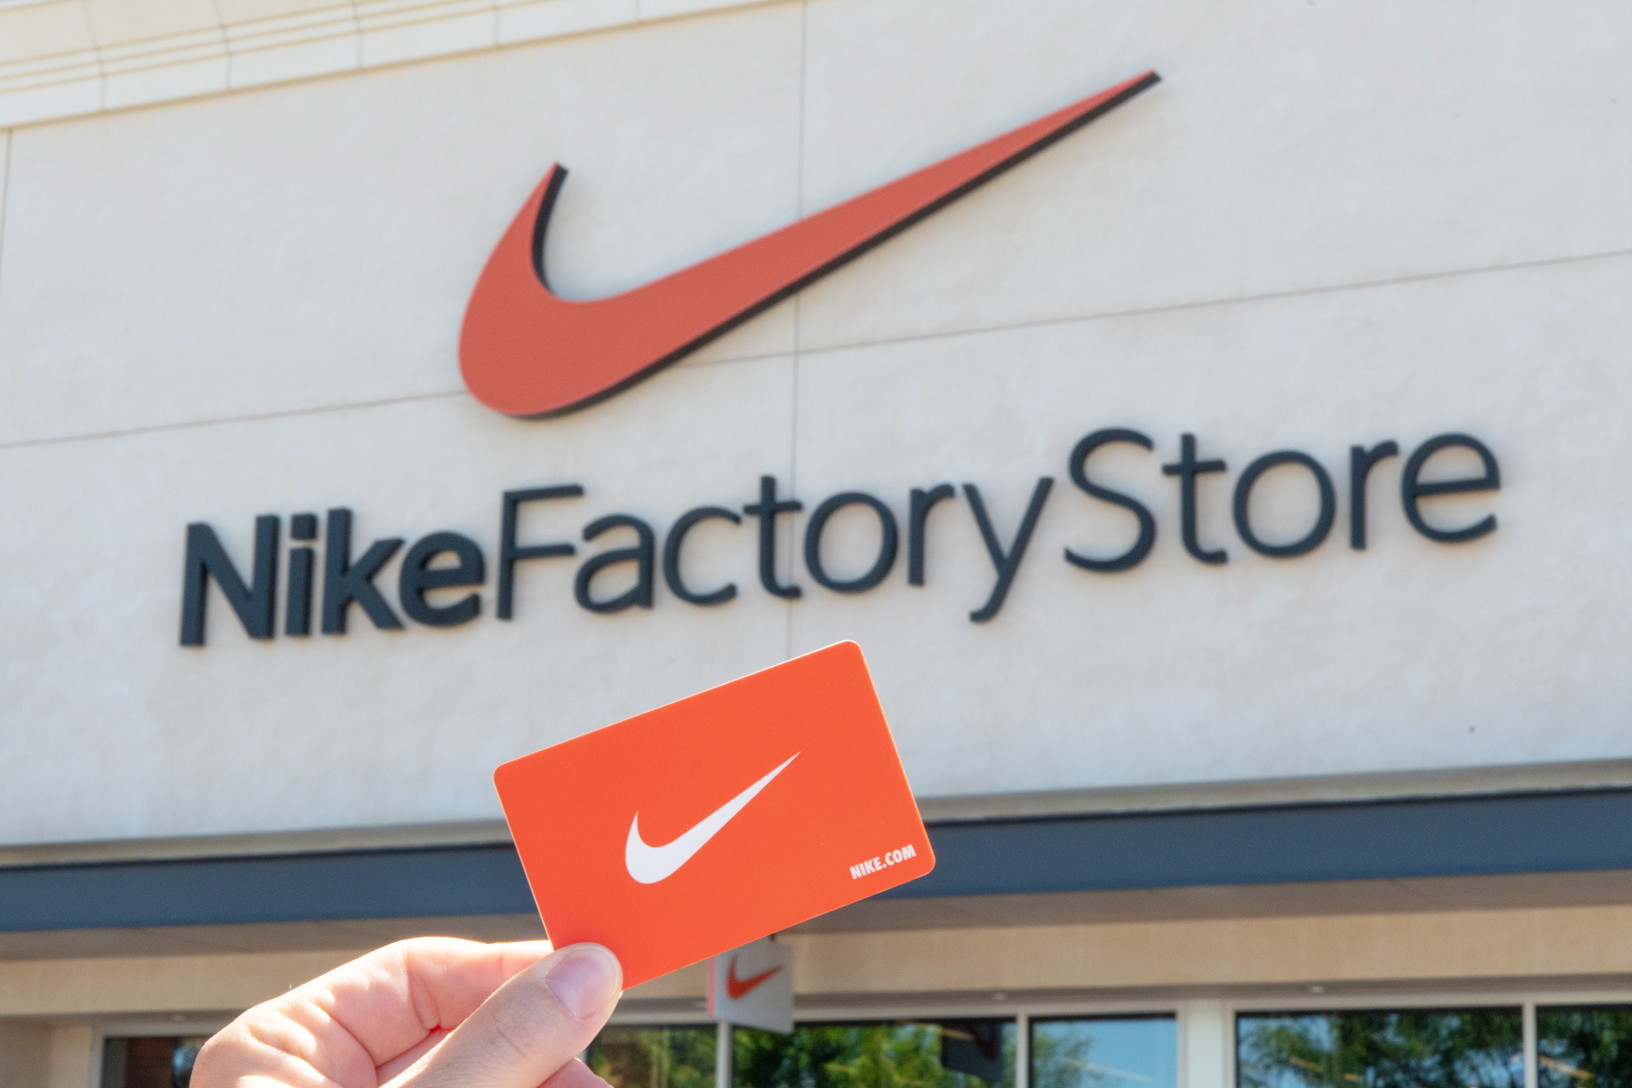 c7d3f79dee5 33 Insanely Smart Nike Factory Store Hacks - The Krazy Coupon Lady